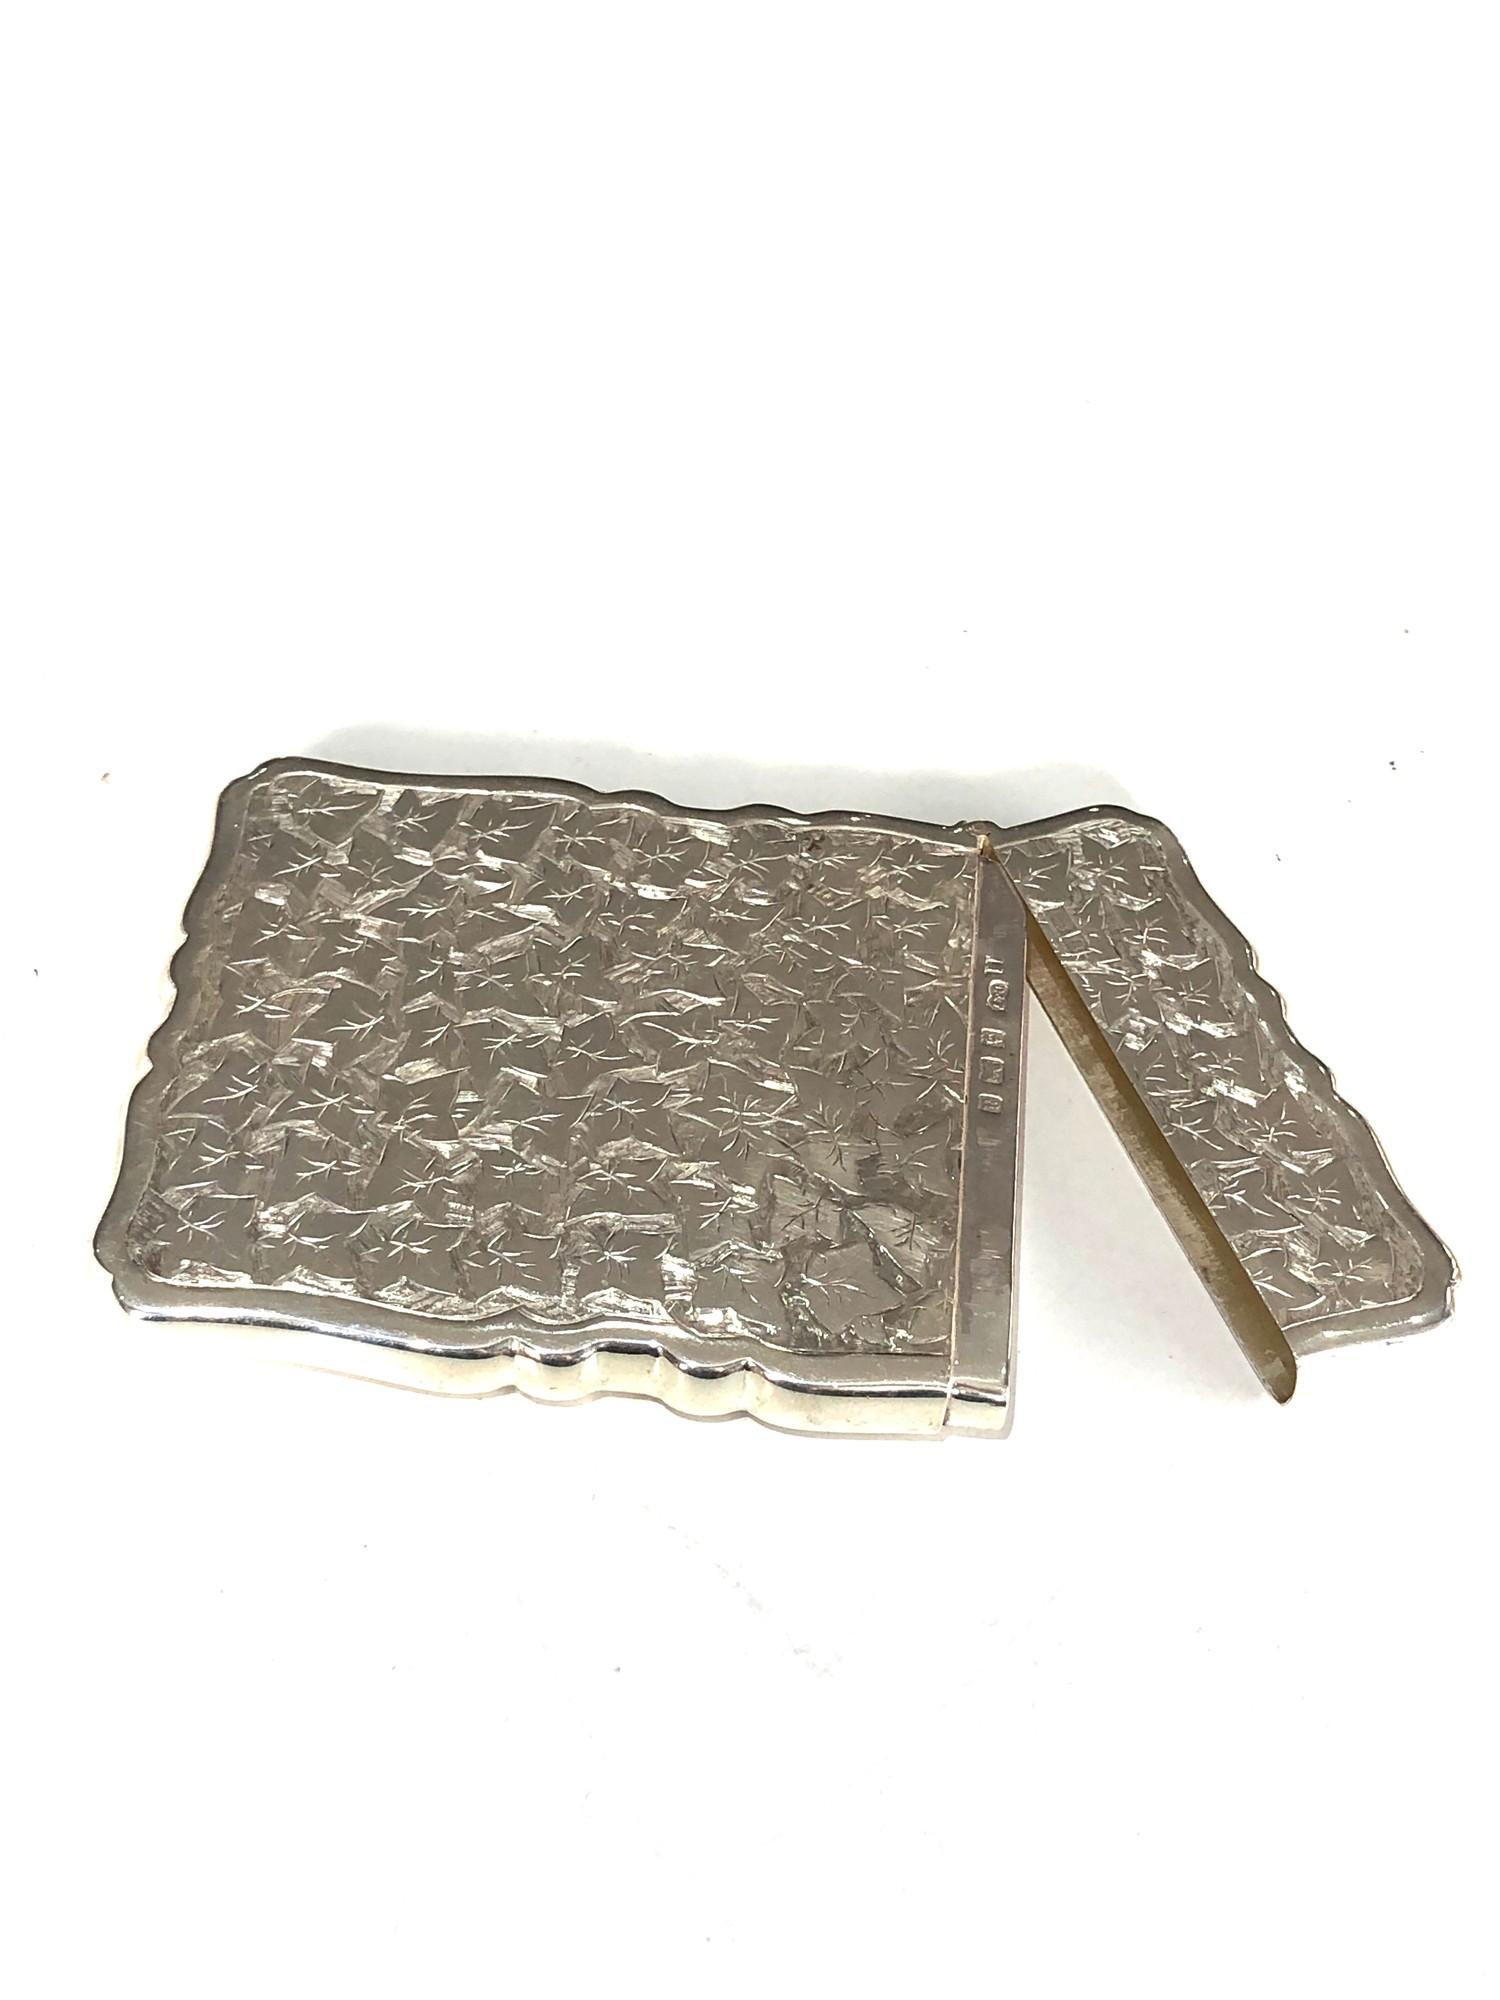 Fine antique silver card case Birmingham silver hallmarks engraved initials on front measure - Image 2 of 5